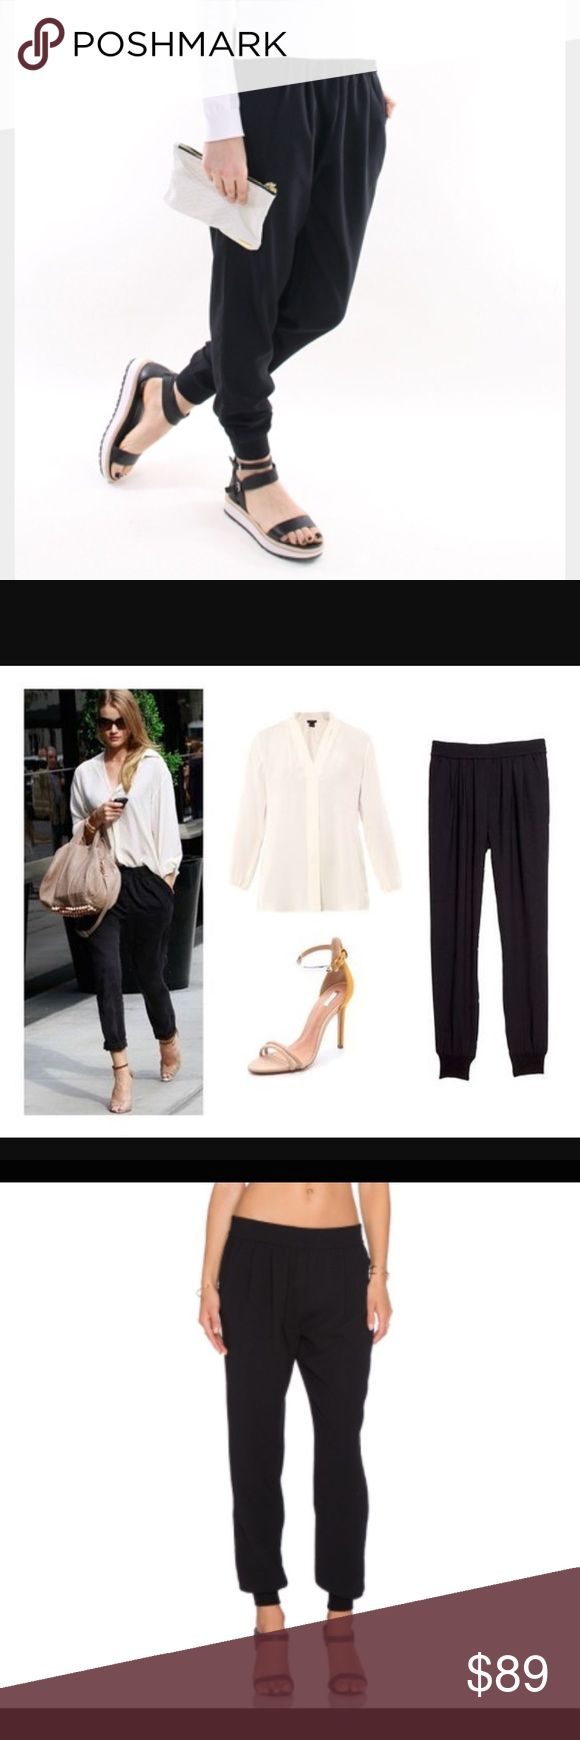 Joie mariner crop black jogger pants Never Benin worn new without tags Joie mariner jogger pants. Almost every blogger and celebrities wear them. Absolutely super comfy and stylish. Elastic waist and ankle. Size S good for S/M joie  Pants Track Pants & Joggers